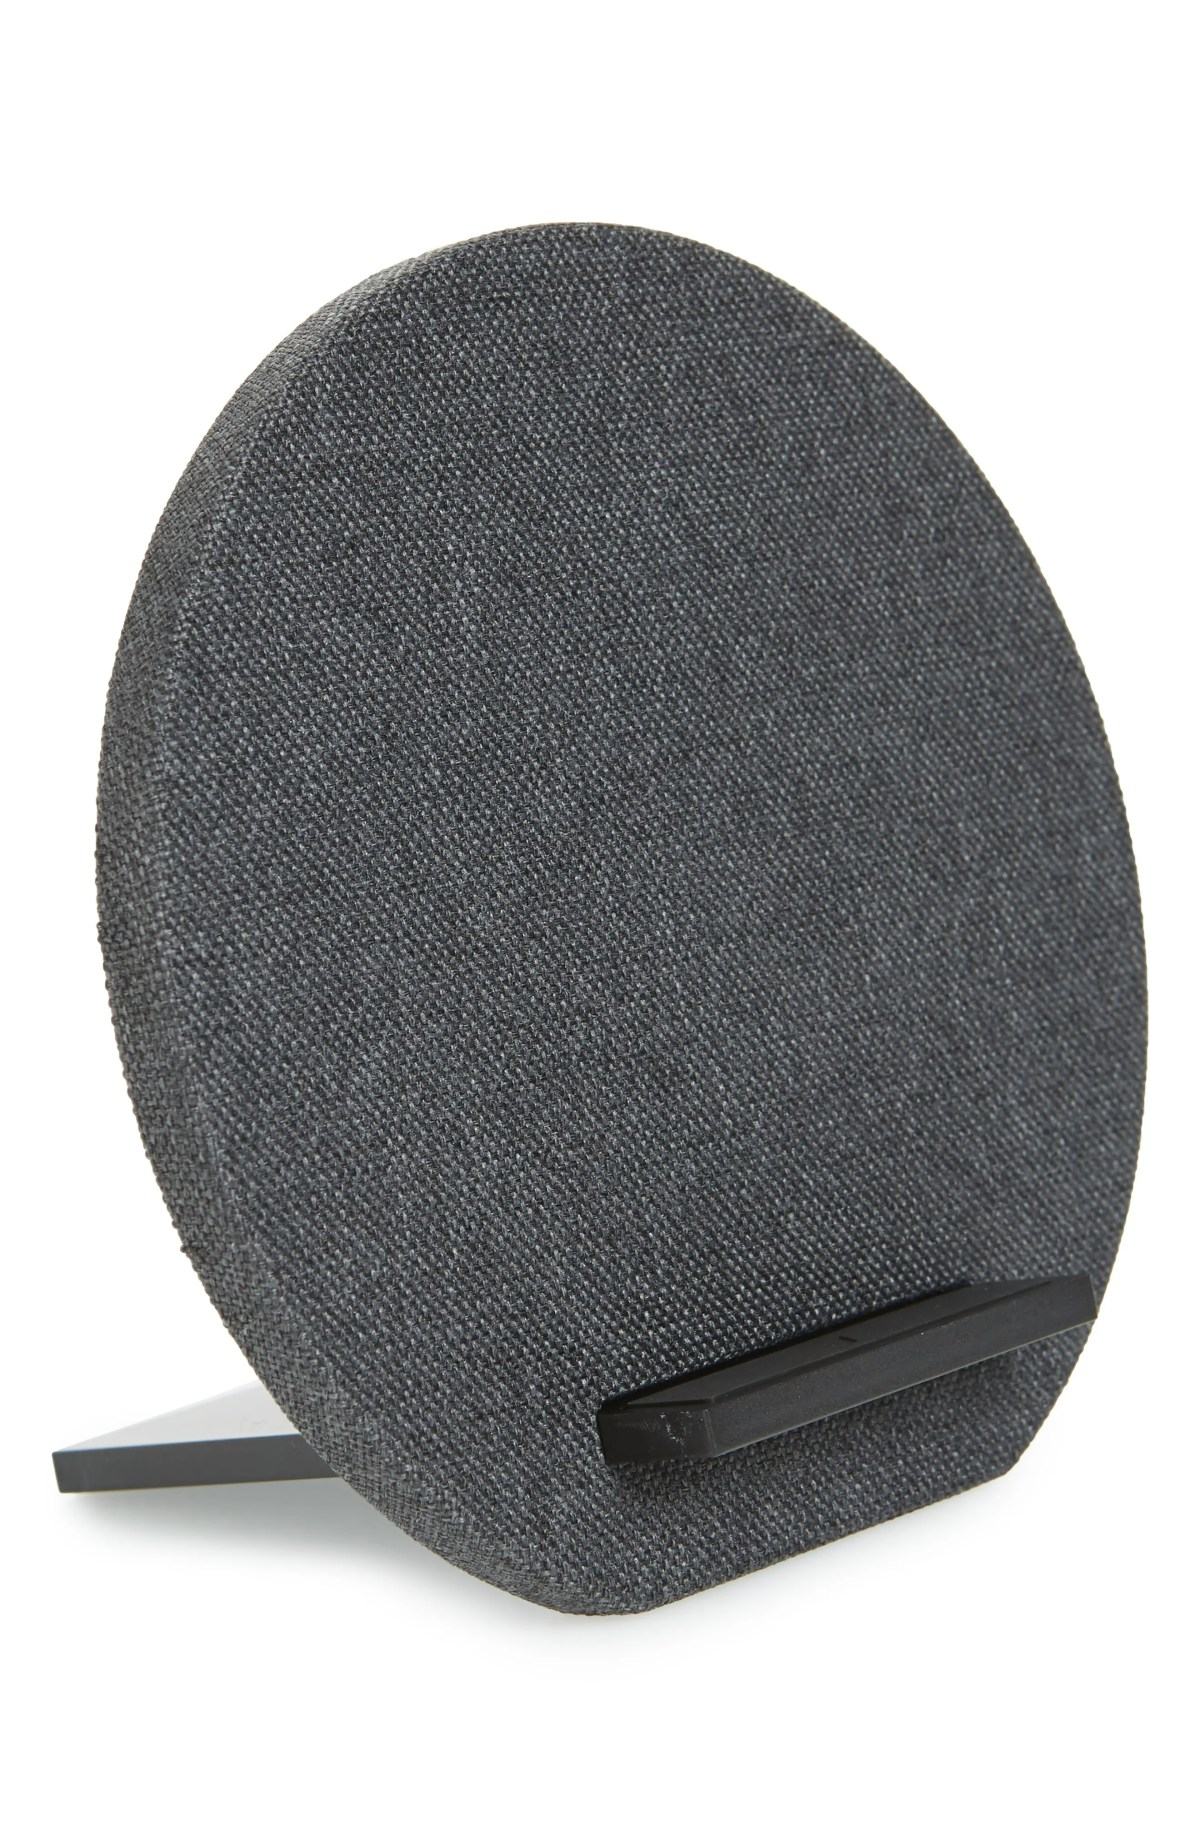 NATIVE UNION Dock Wireless Charger, Main, color, GREY